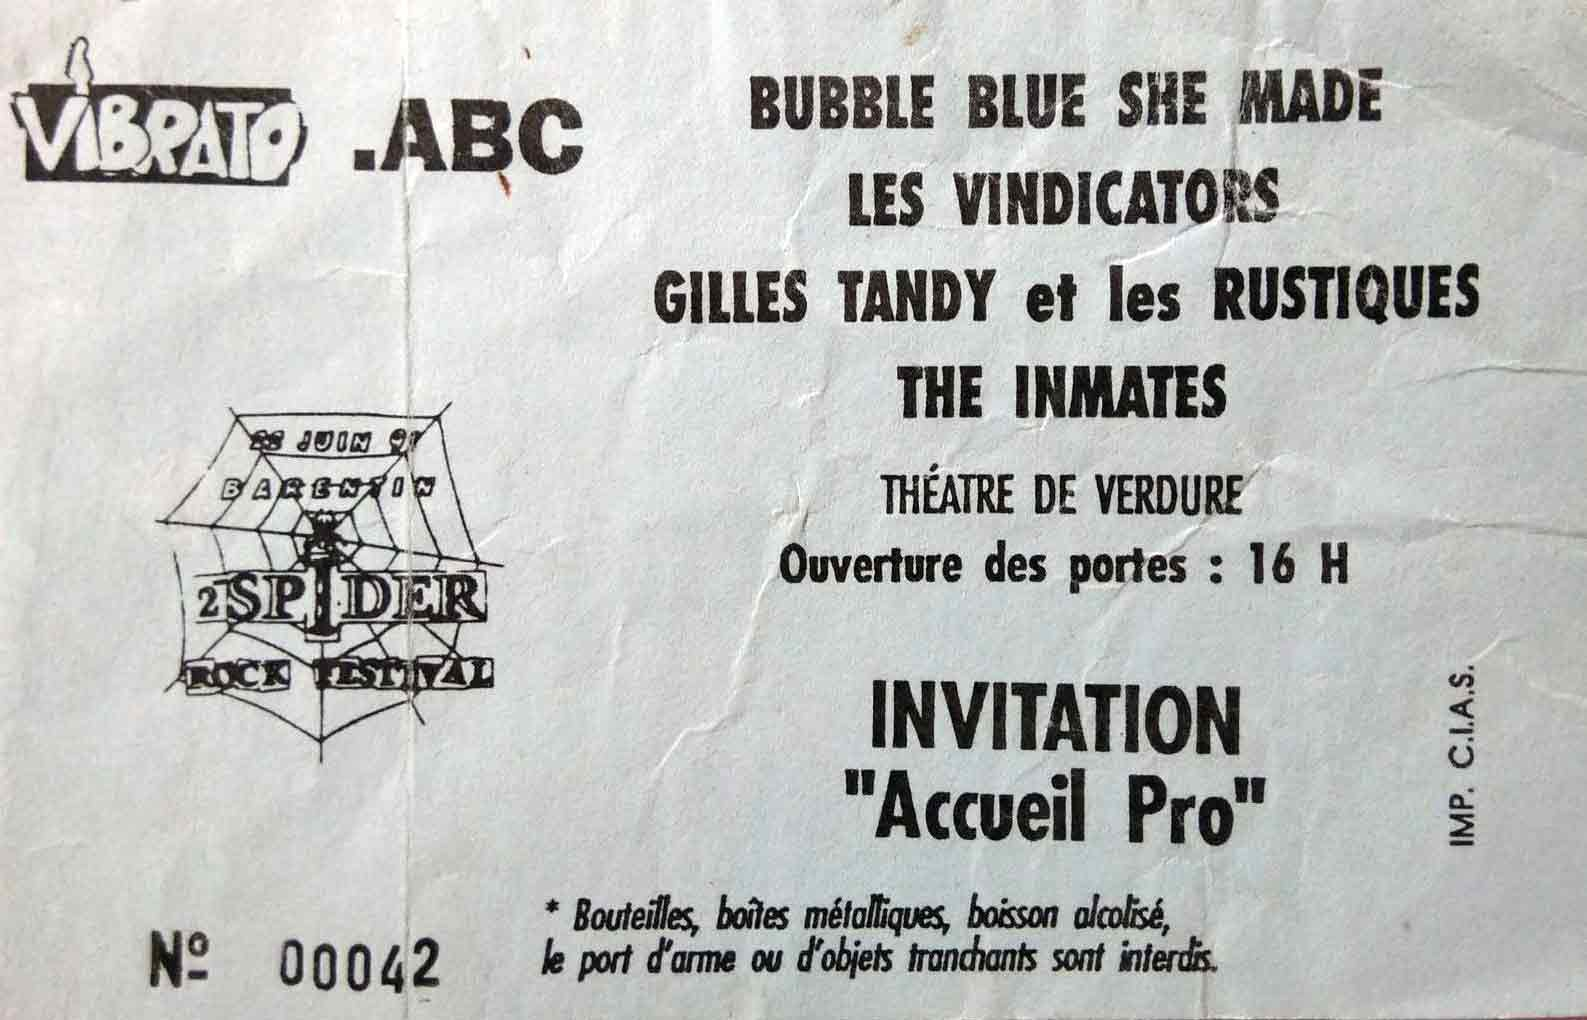 "22 juin 1991 Bubble Blue She Made, les Vindicators, Gilles Tandy et les Rustiques, The Inmates à Barentin ""Theatre de Verdure"""